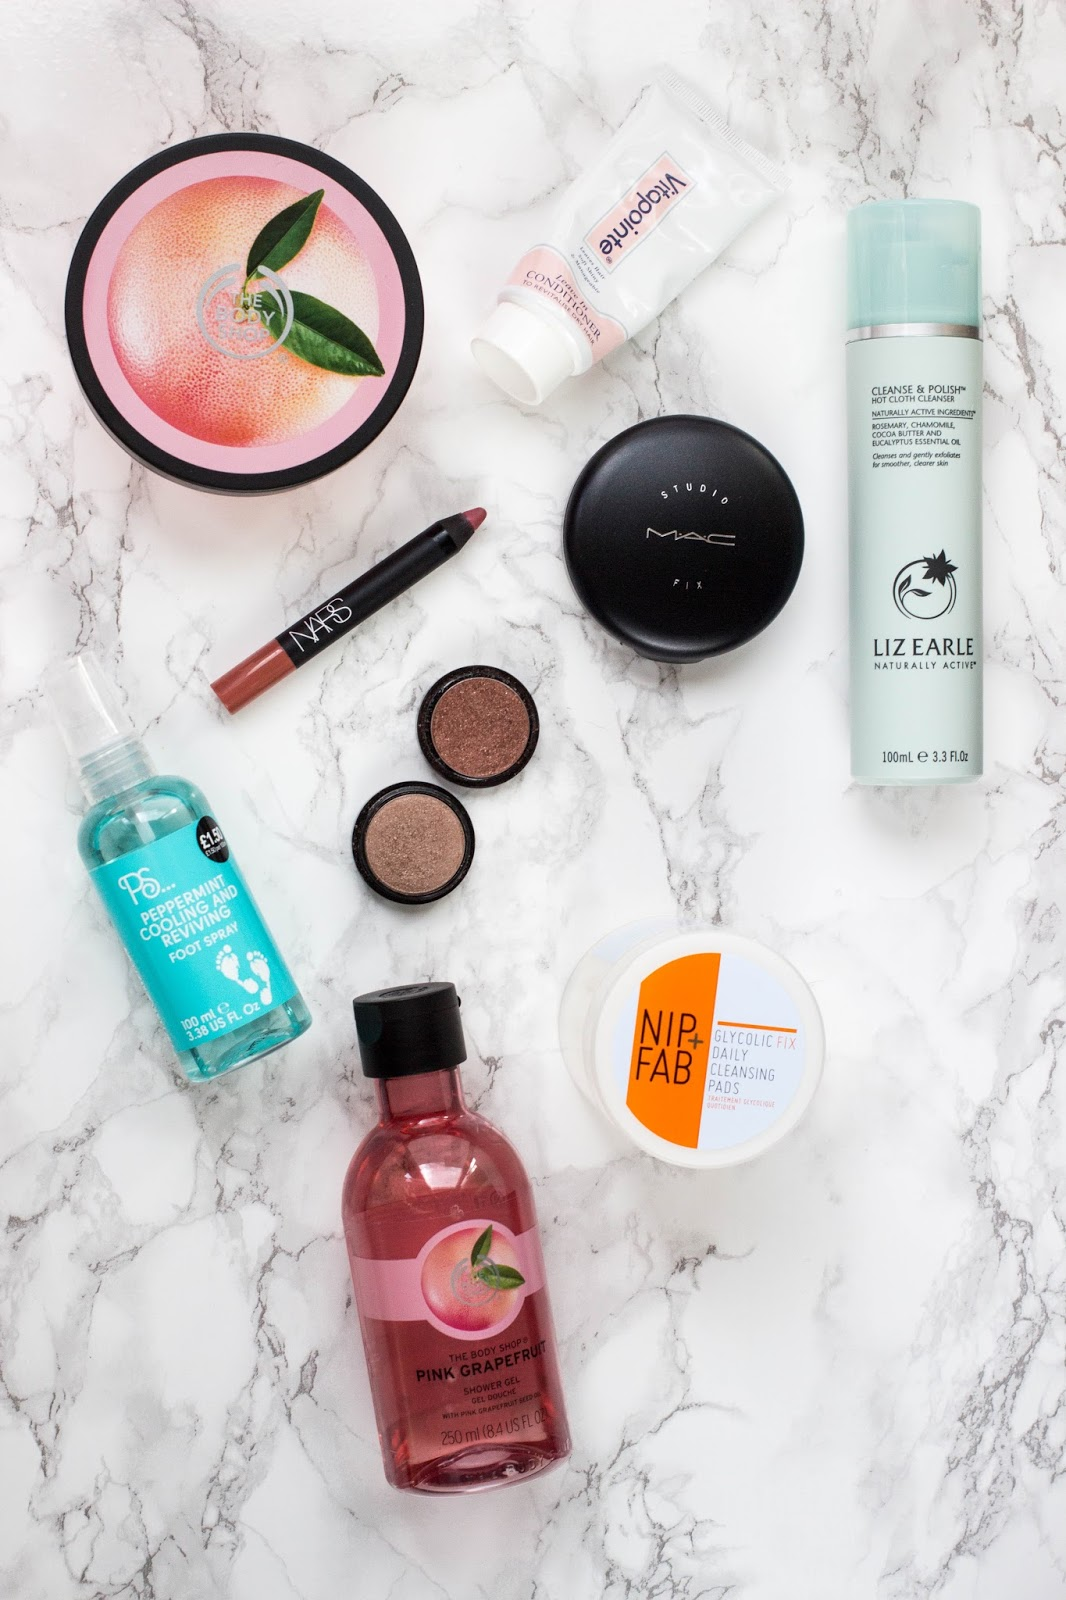 Flatlay, Flat lay, Marble Background, Beauty Blogs, Favourites, Monthly Favourites, Katie Brown Belper, Katie Writes Blog, Derbyshire Bloggers, East Midlands Blogs, Midlands Bloggers, Katie Writes,